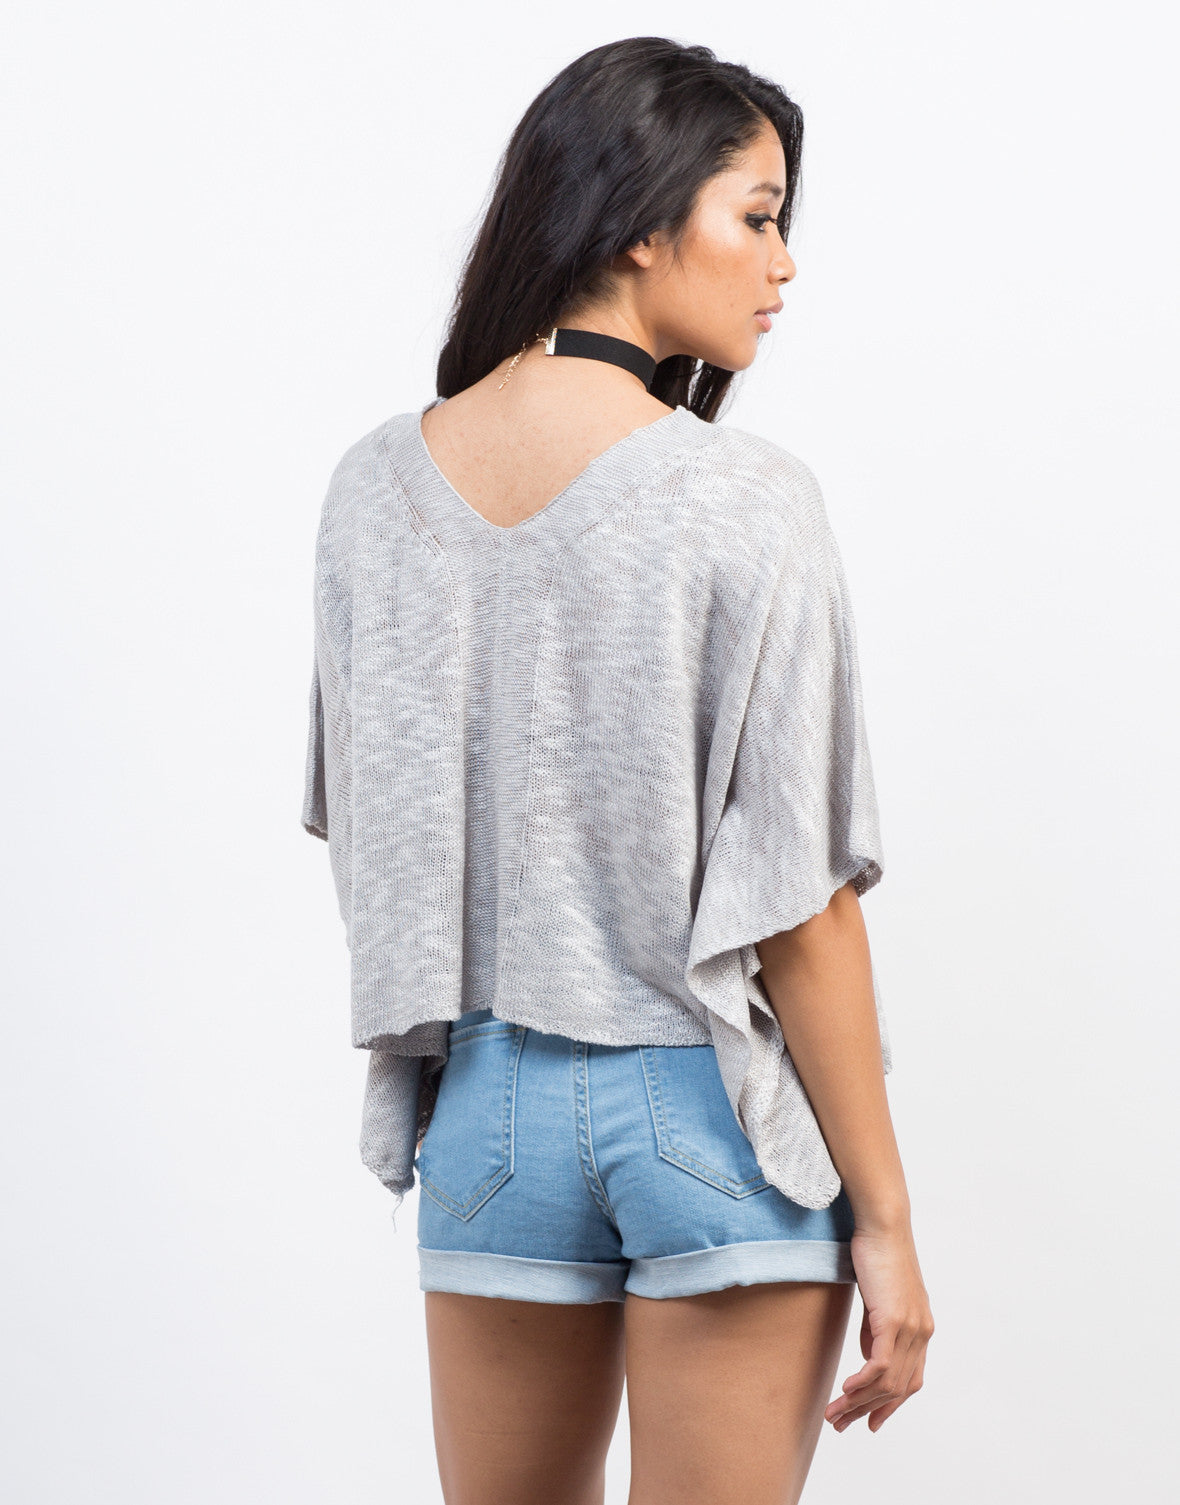 Back View of V-Neck Knit Cropped Top